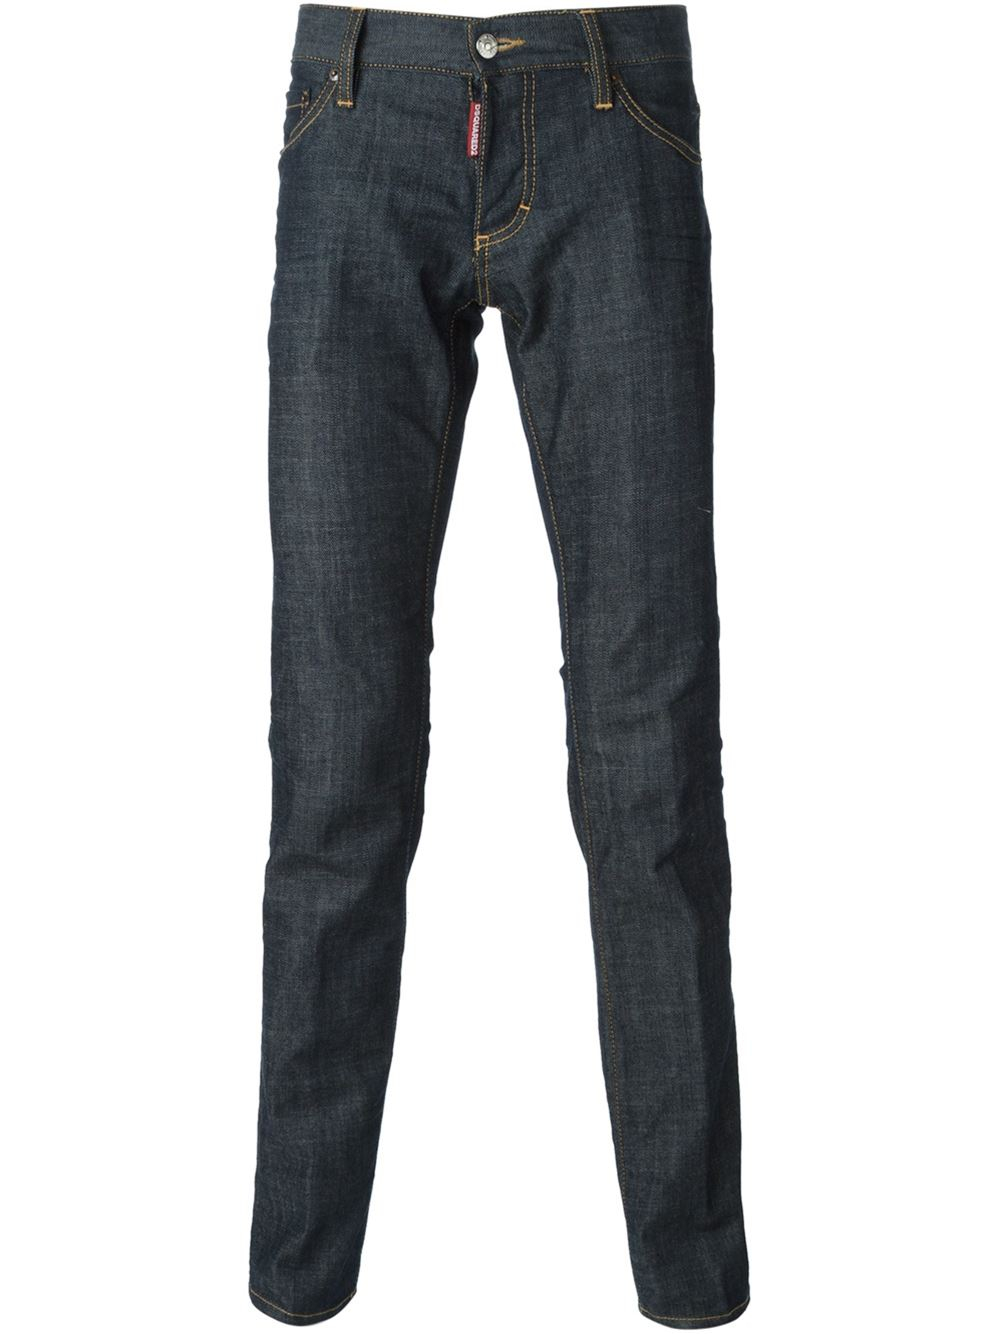 Royalty no muffin top skinny jeans with a high rise fit features classic details, including a 5-pockets construction. Zip fly closure. 66% Cotton, 32% Polyester, 2% Spandex. Machine wash cold separately inside out. Do not bleach, tumble dry low, warm iron if needed.